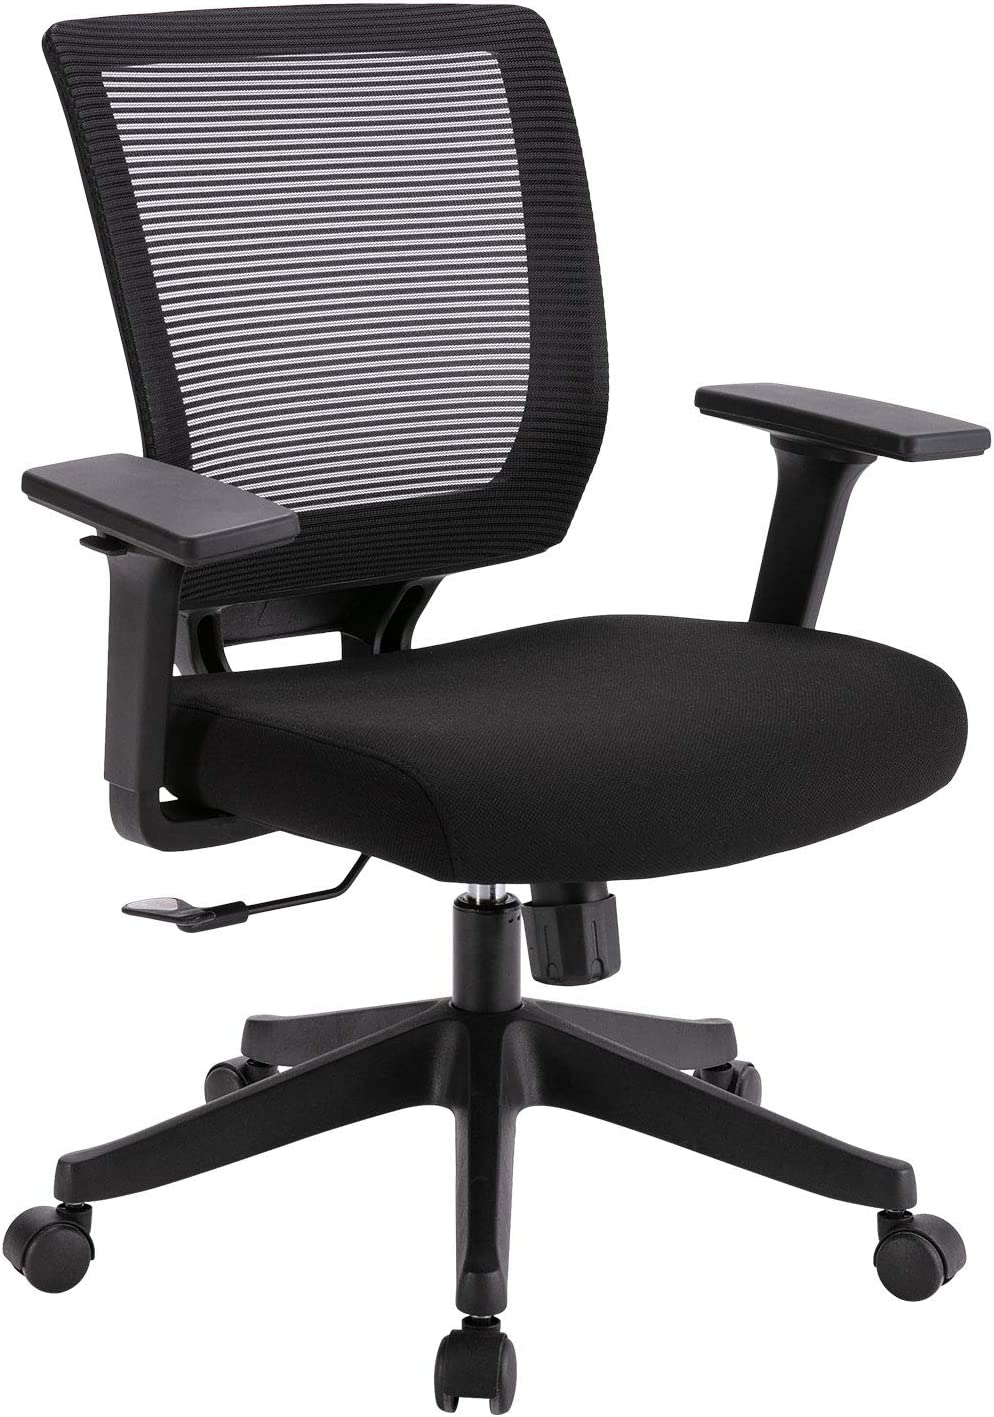 Rimiking Mesh Office Chair Ergonomic Computer Chair Adjustable Height and Armrest Mid-Back with Comfort Breathable Lumbar Support Executive Swivel Chair Black